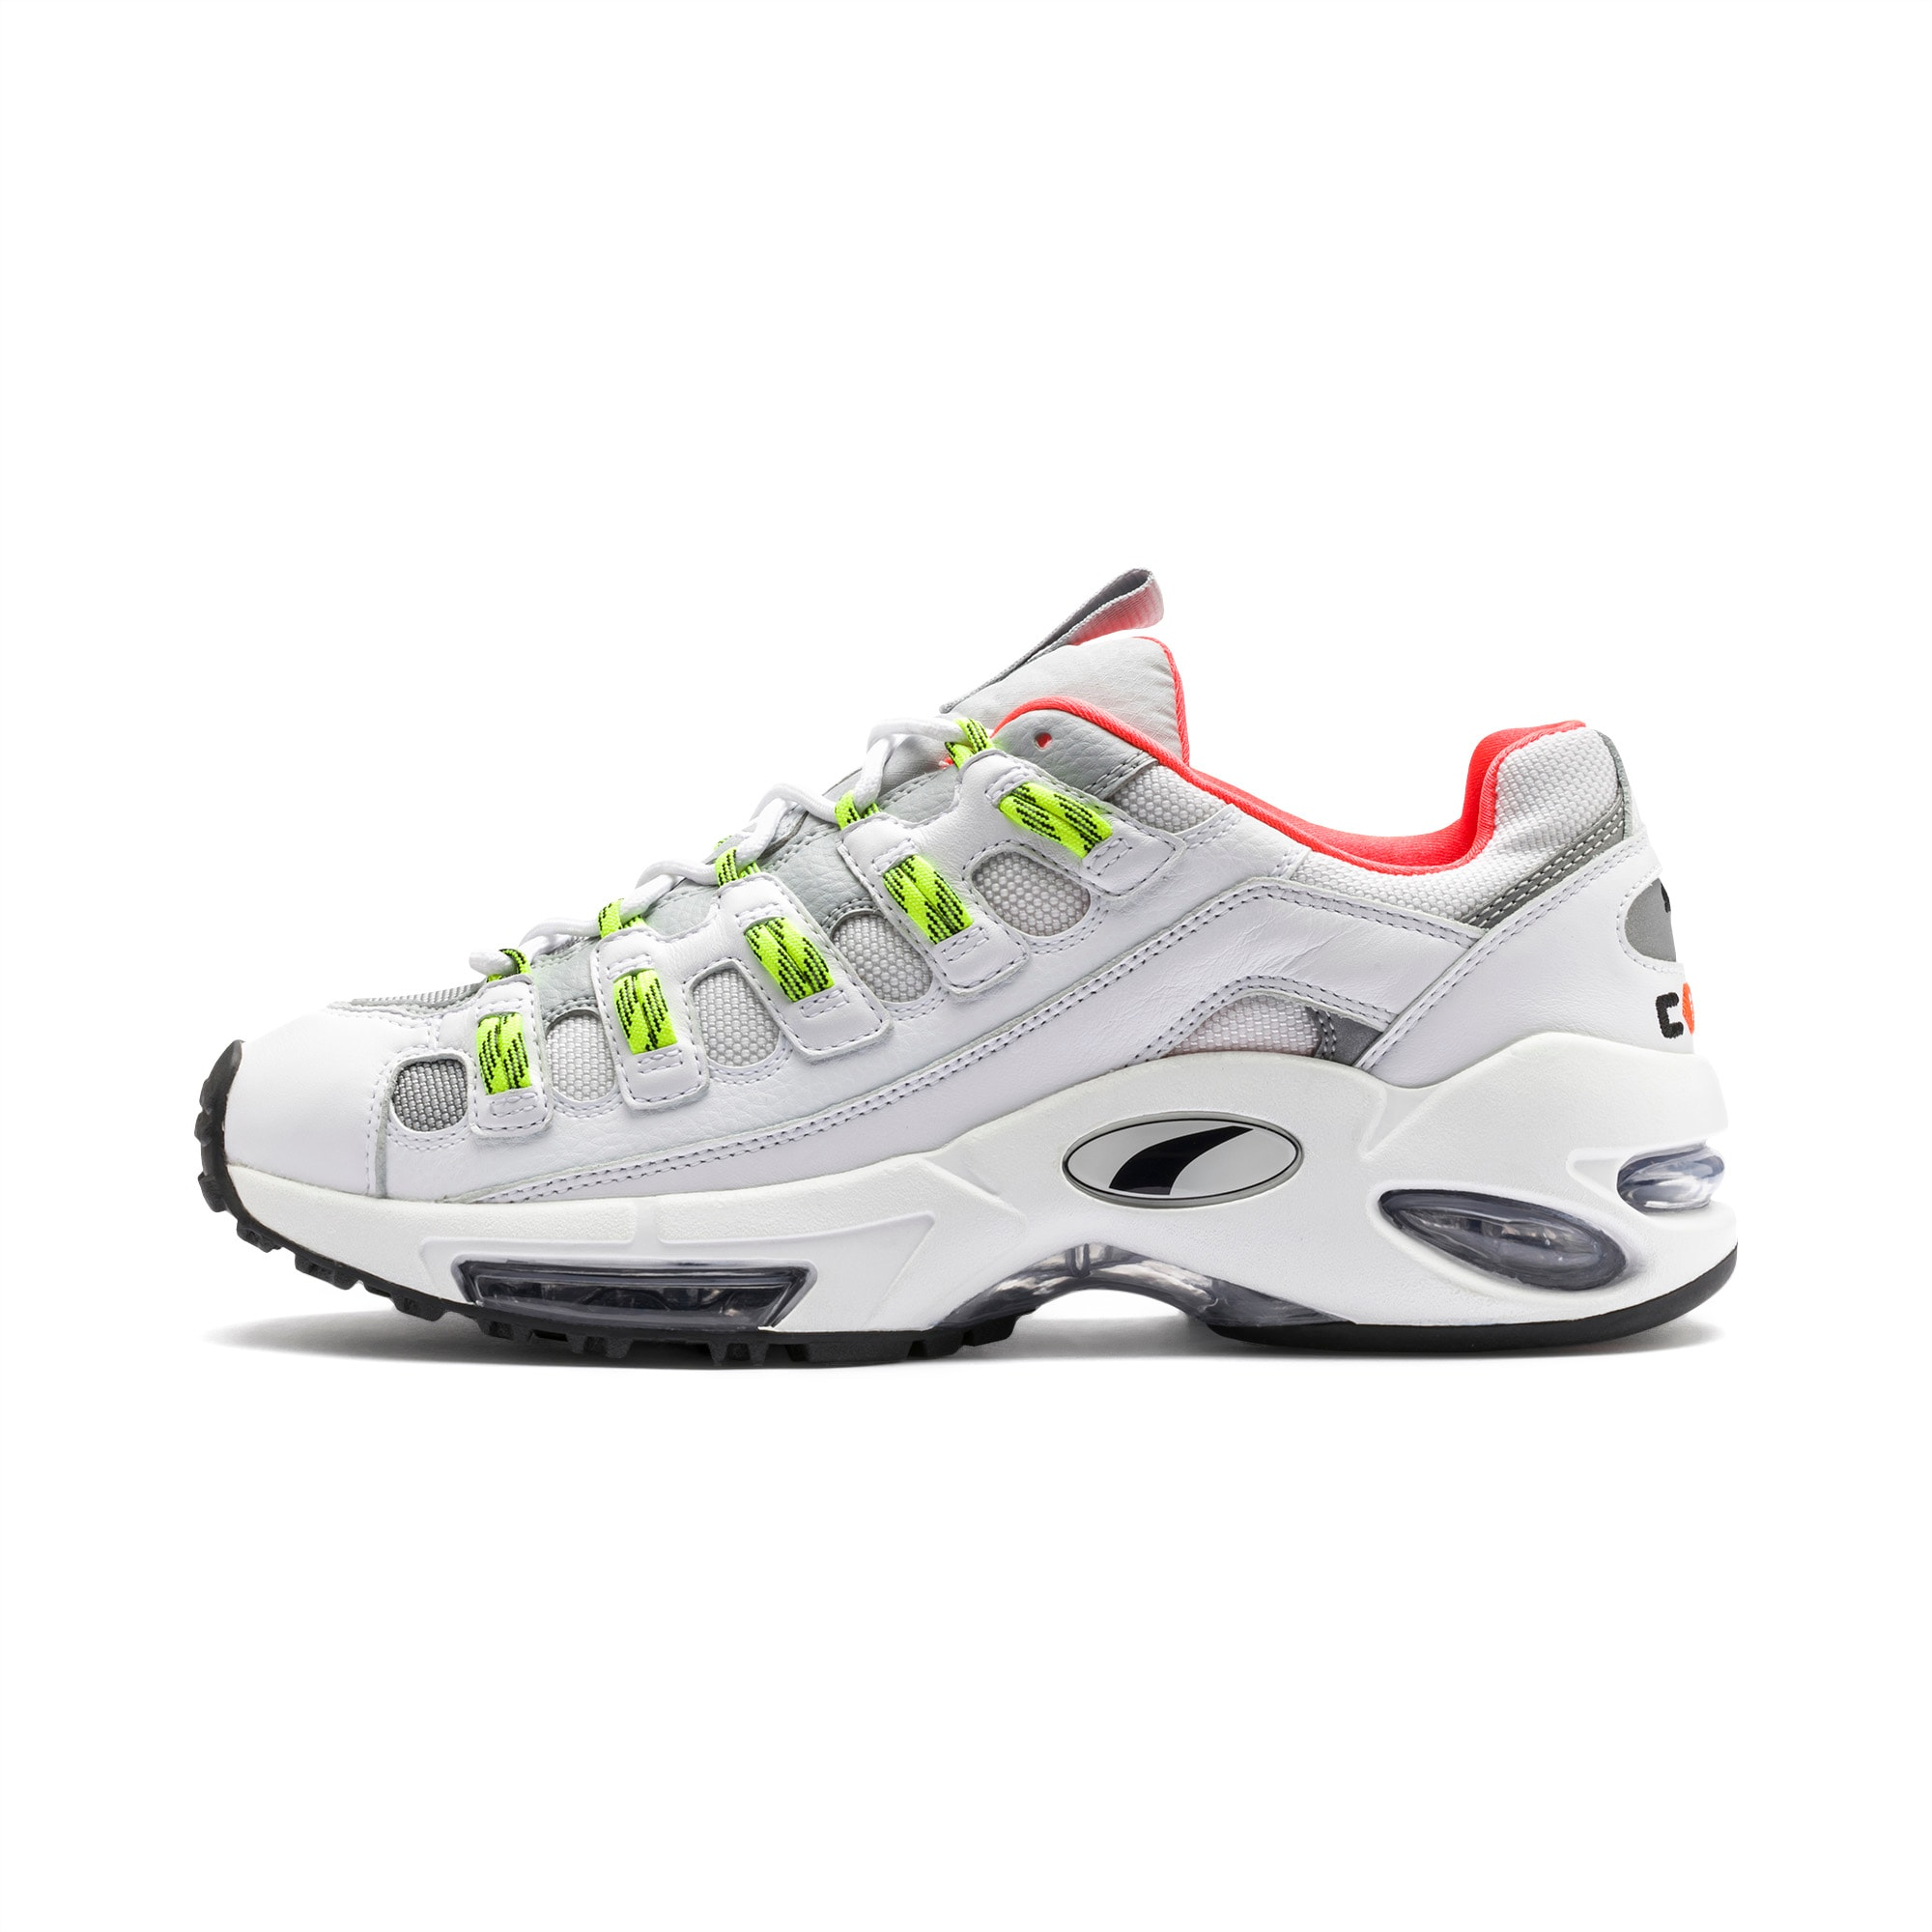 CELL Endura Rebound Sneakers